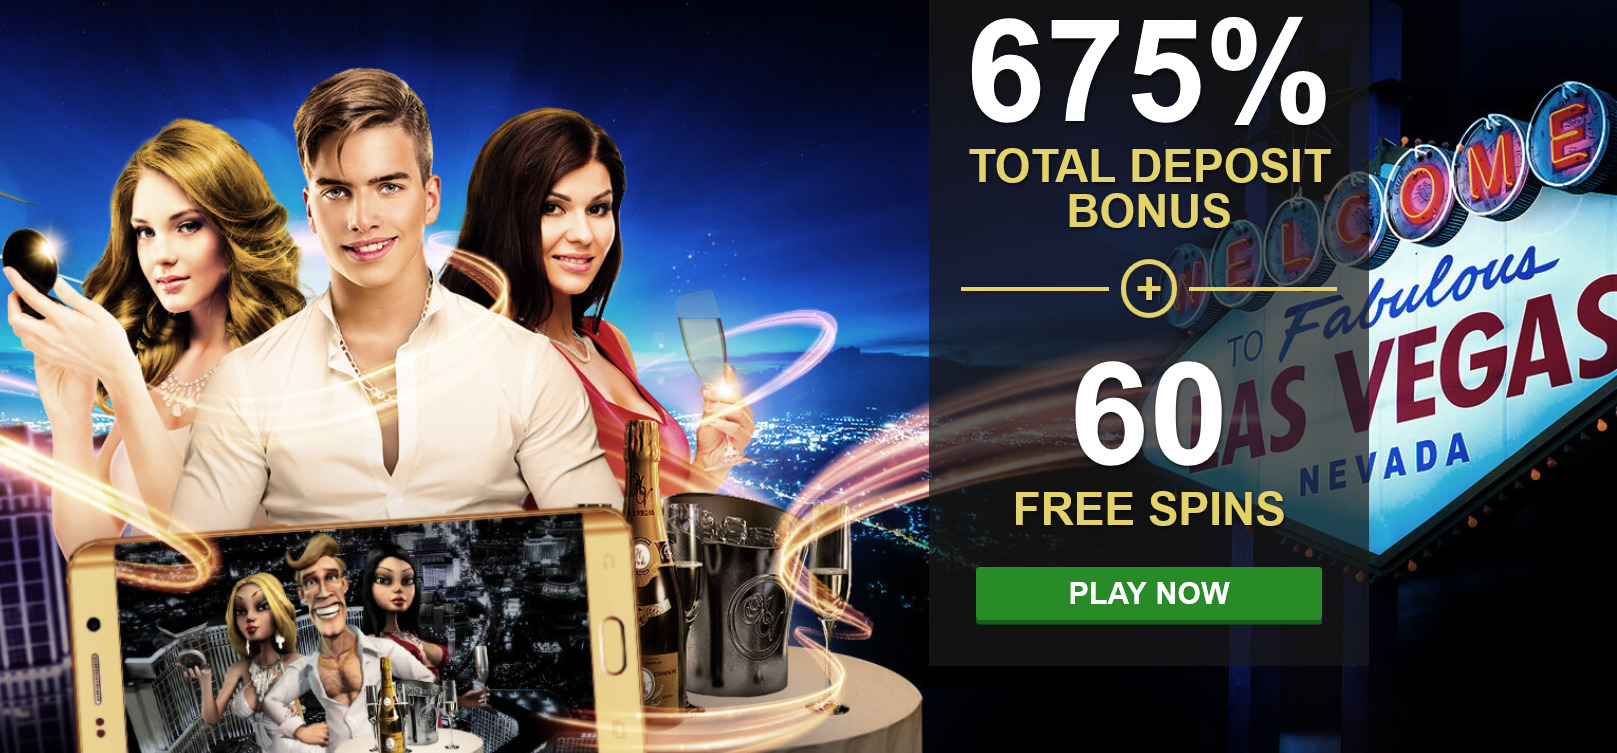 Rich Casino - 675% + 60 Free Spins